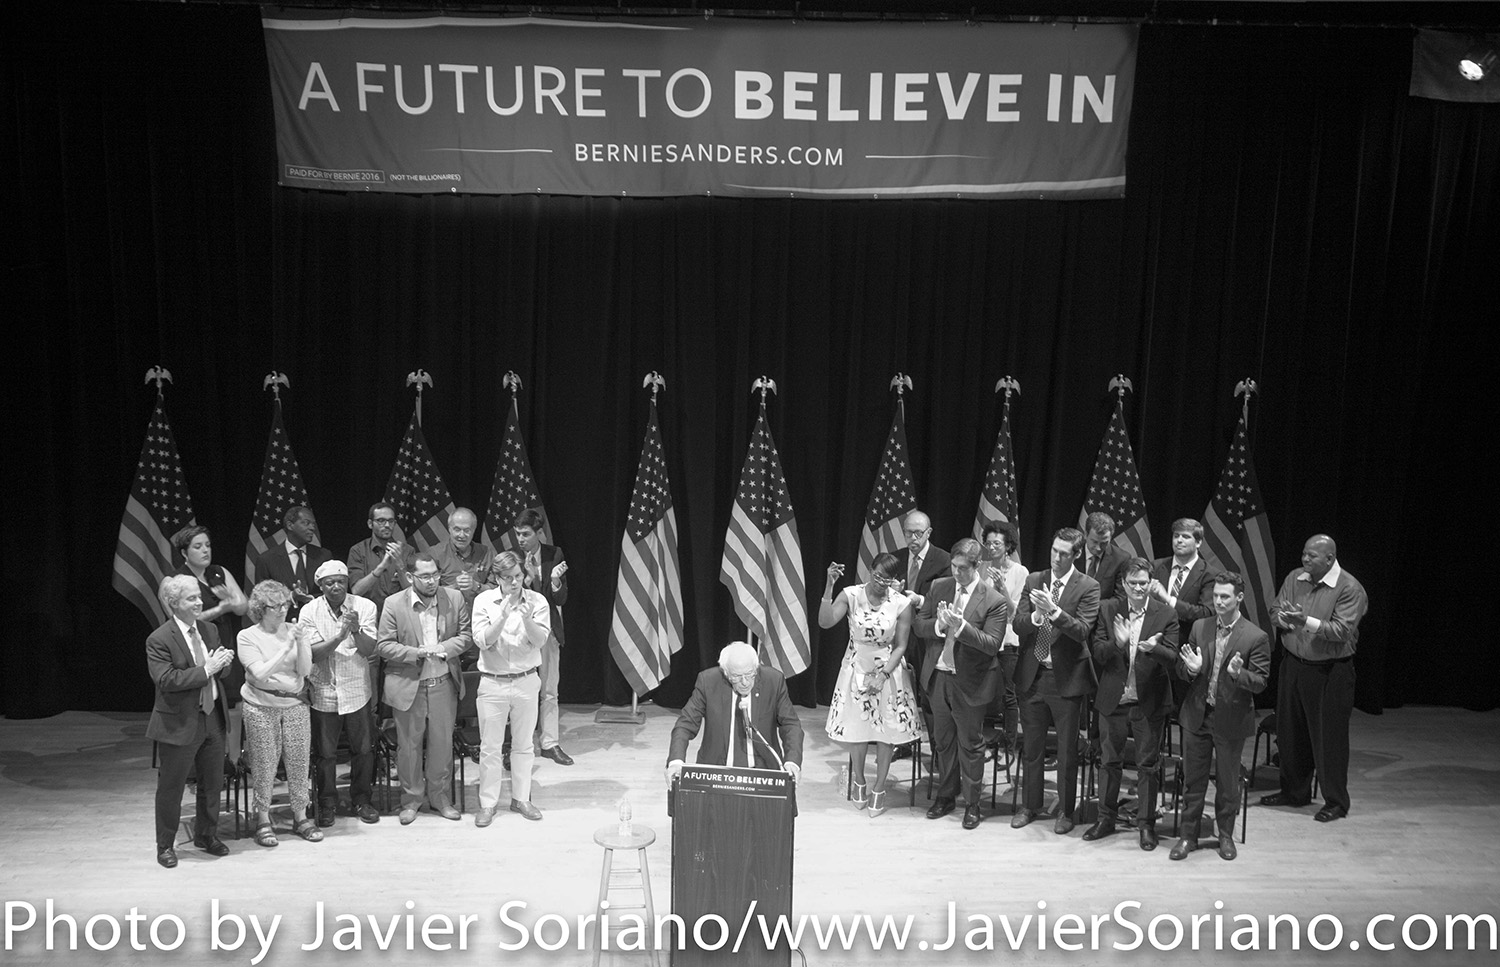 6/23/2016 Town Hall. Manhattan, NYC – Bernie Sanders and his supporters. Photo by Javier Soriano/http://www.JavierSoriano.com/